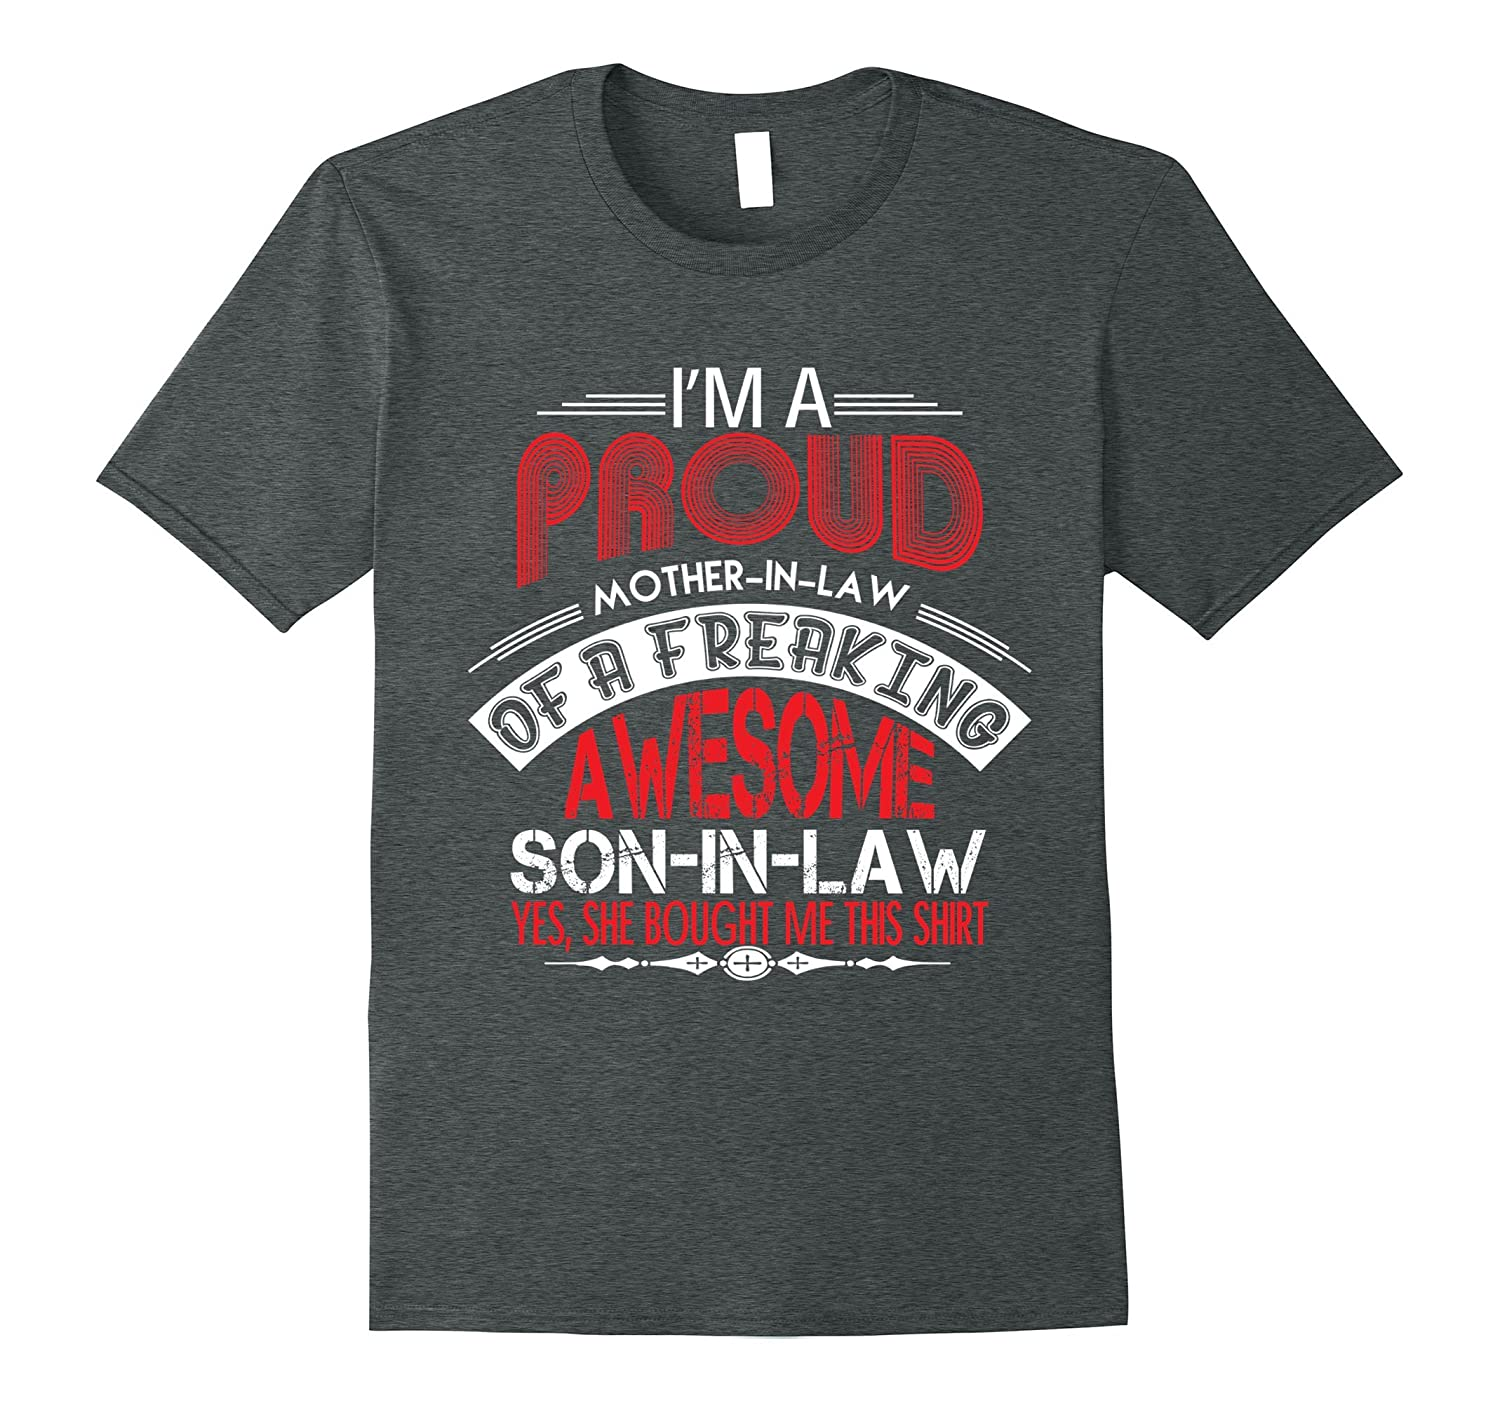 A Freaking Awesome Son T Shirt, Awesome Son T Shirt